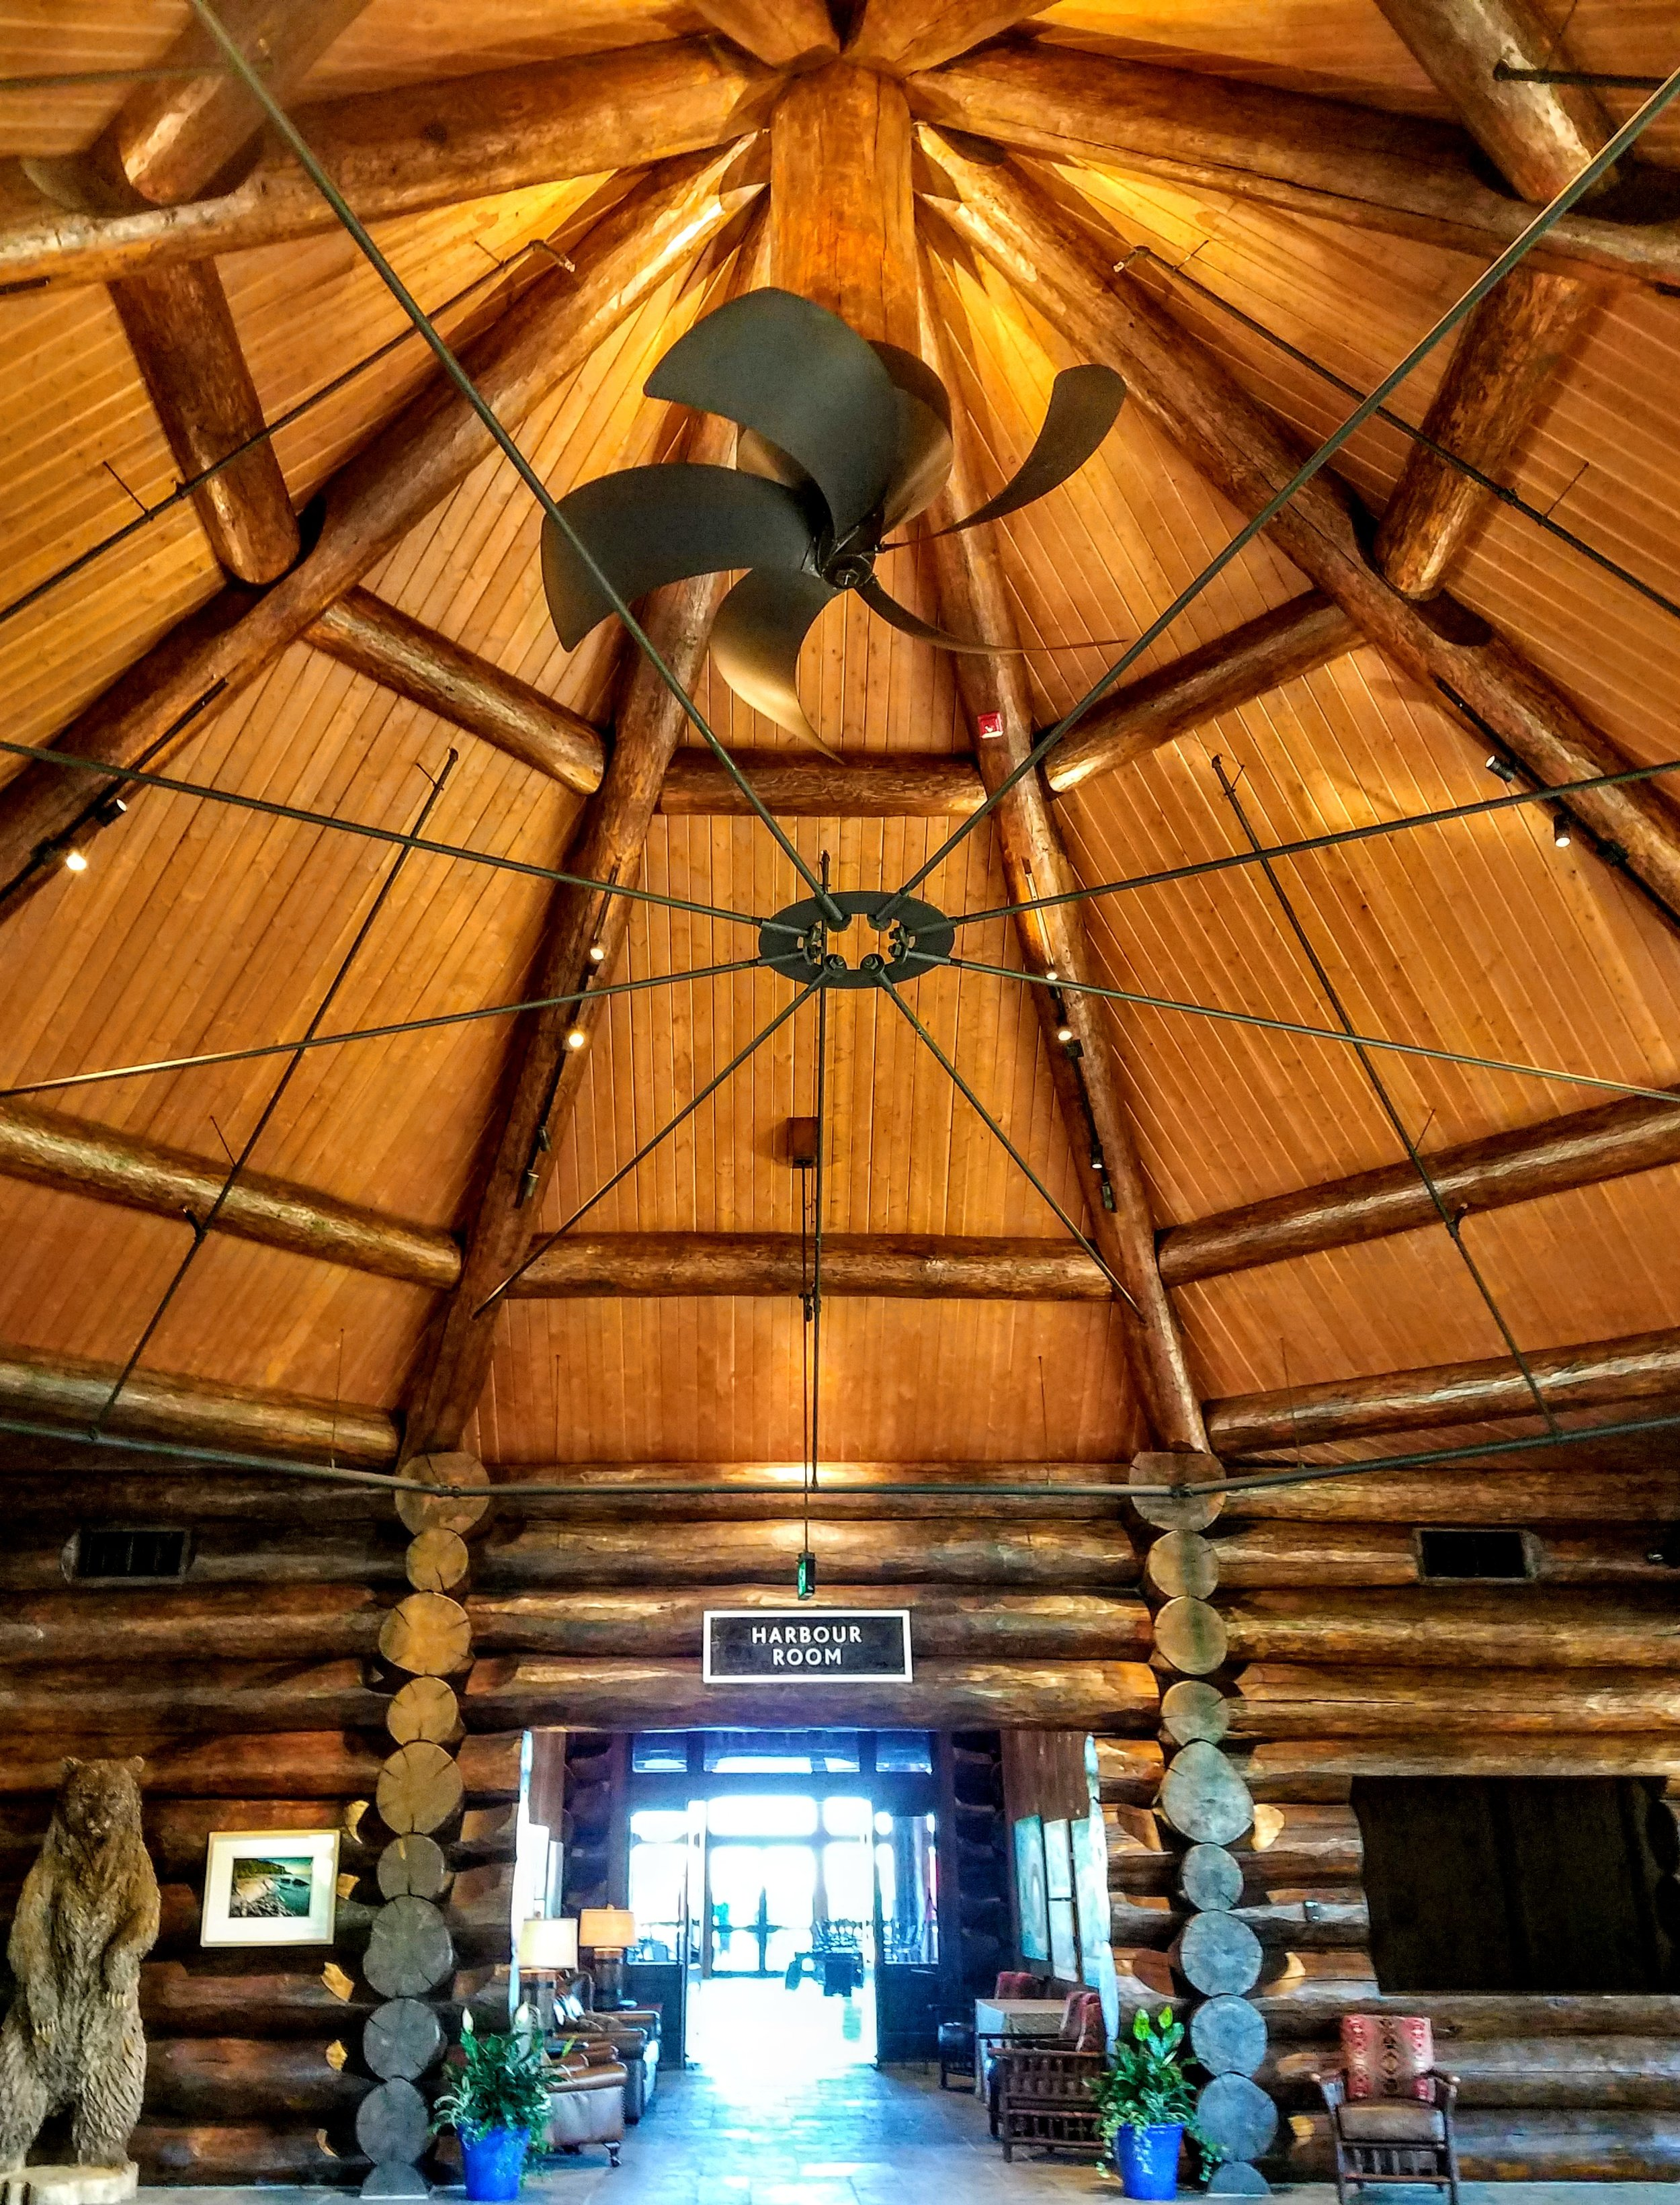 The $18 million event center lodge at Sportsman's - love the 'prop' fan